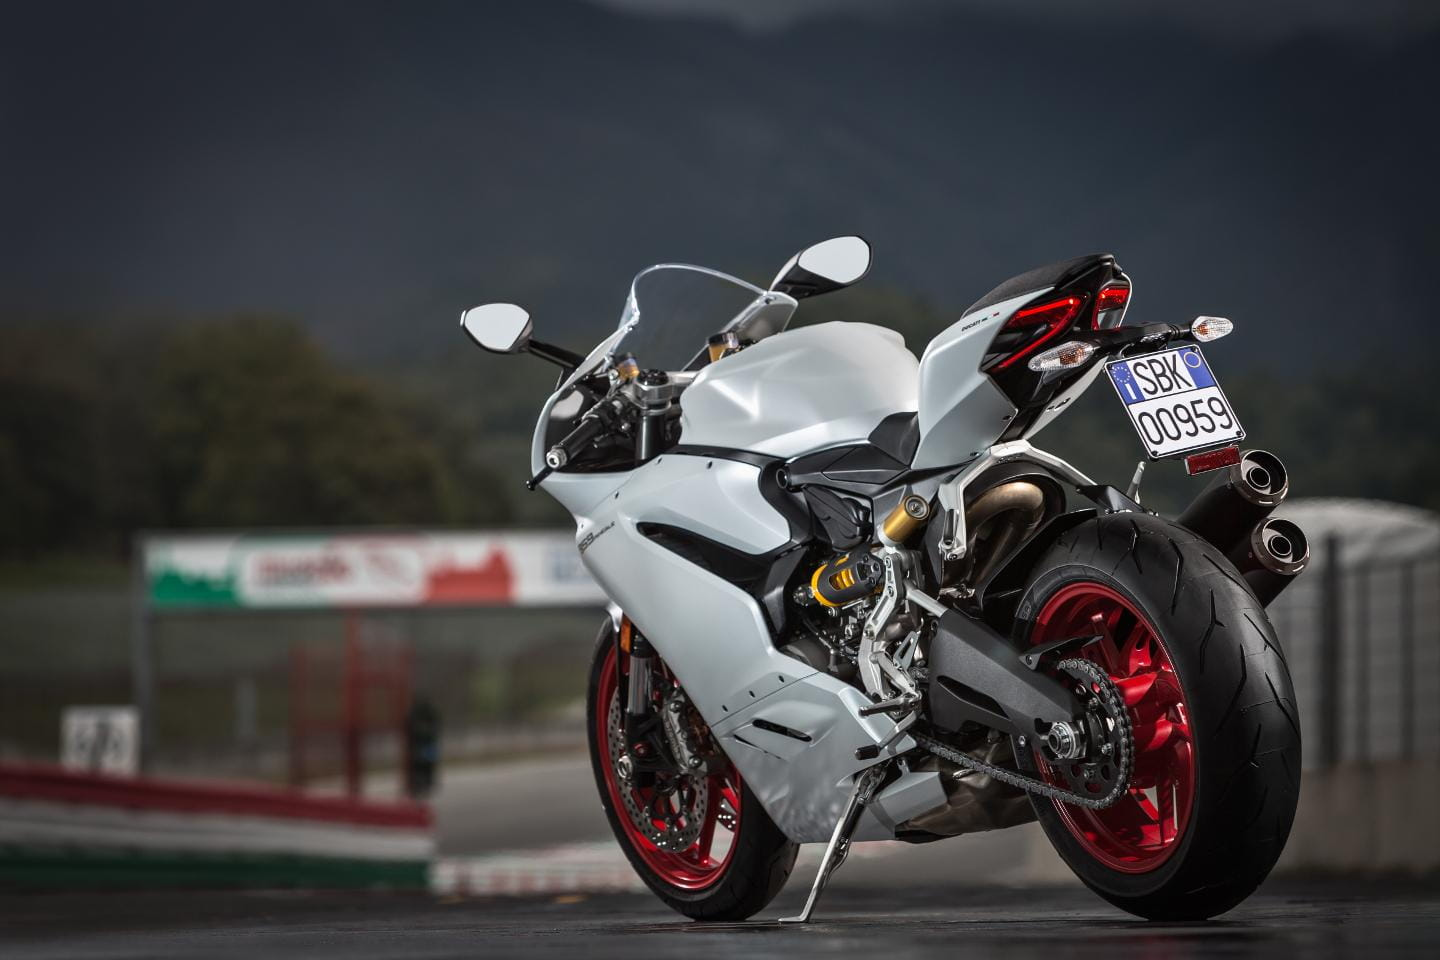 Ducati Superleggera Price Philippines